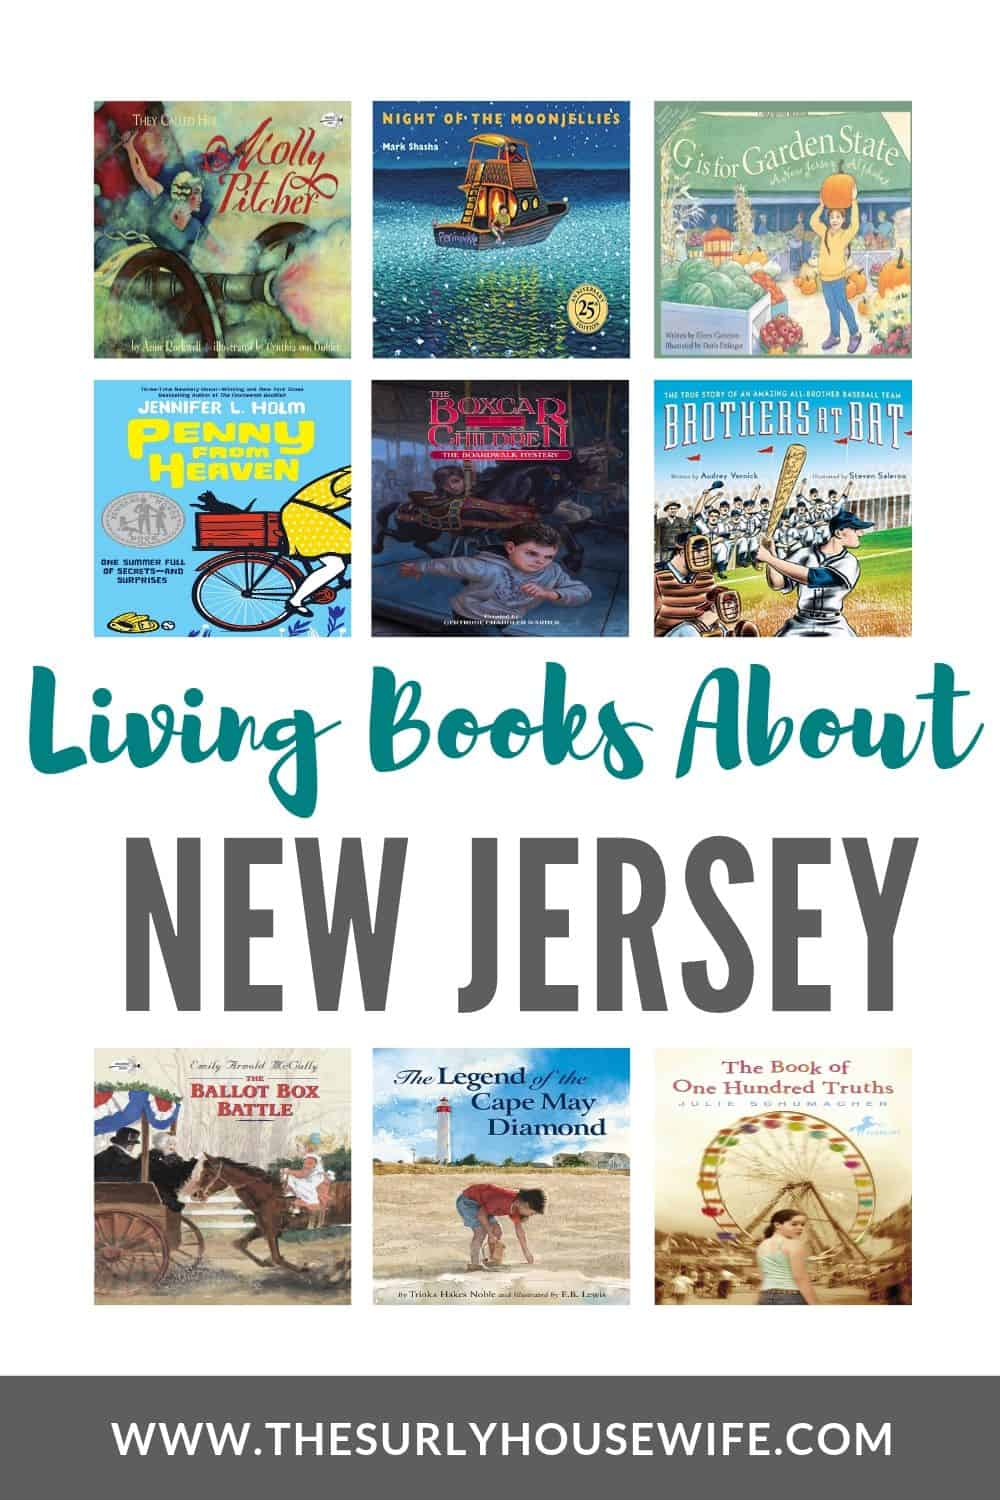 Doing a 50 states study? 20 New Jersey books for kids starting a state unit study. Learn all about the garden state with fiction and non-fictions books about Thomas Edison, baseball, the Revolutionary war, and more! From pictures books to young adult fiction, this book list is perfect for studying US geography and using a literature-based curriculum. Books to read aloud and books kids can read for themselves. A book list for kids of all ages, a perfect collection for your homeschool.